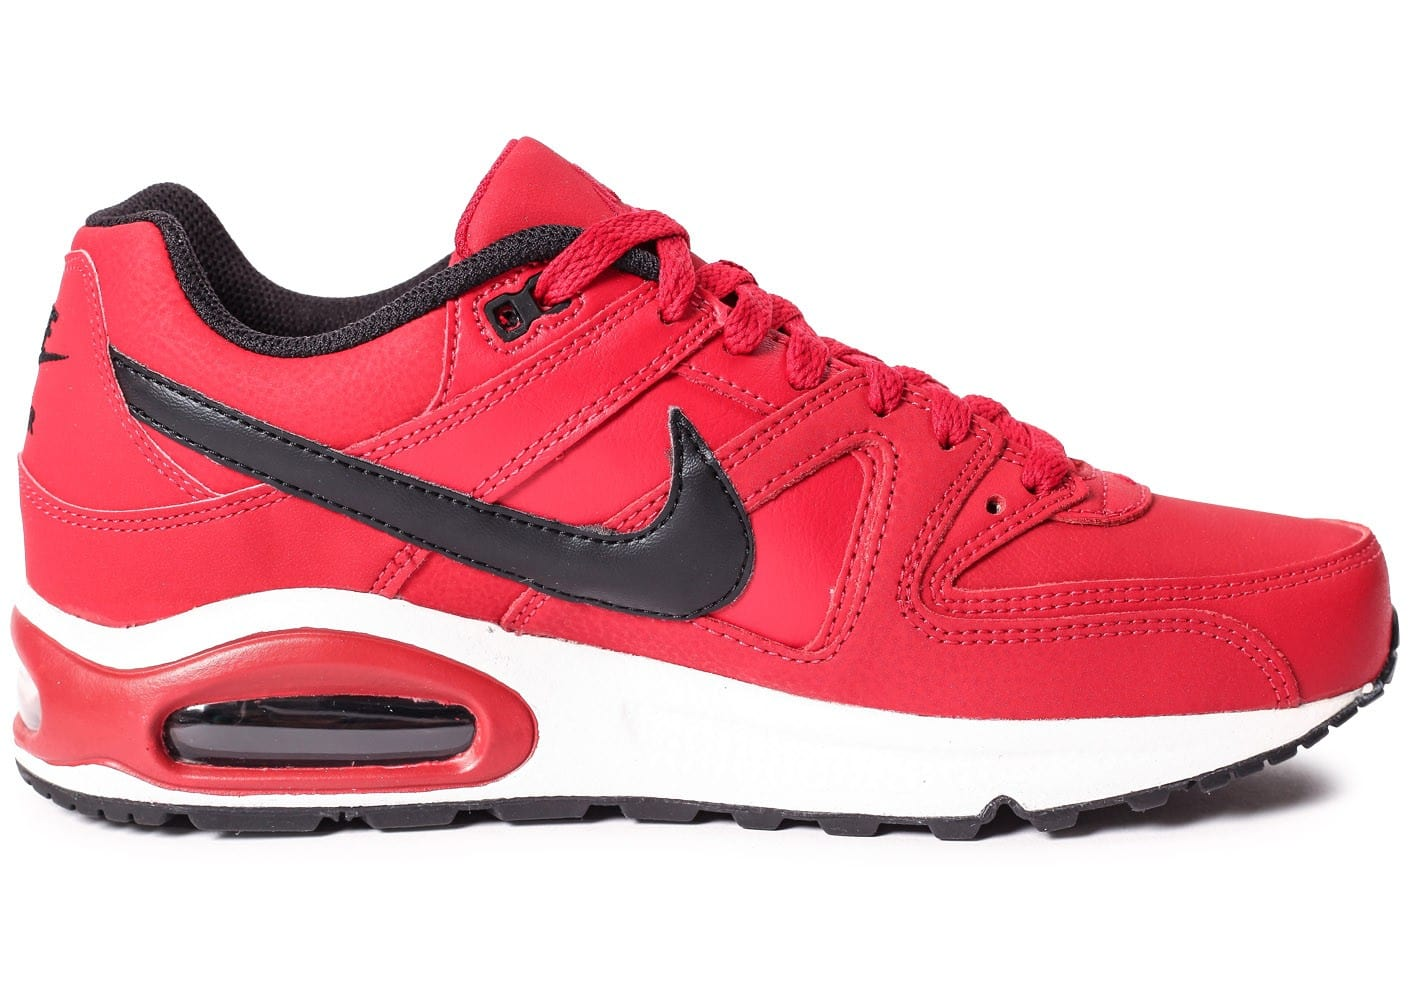 info for 37878 7224c inexpensive chaussures nike air max command leather rouge et noire vue  dessous 8dedb 48edb